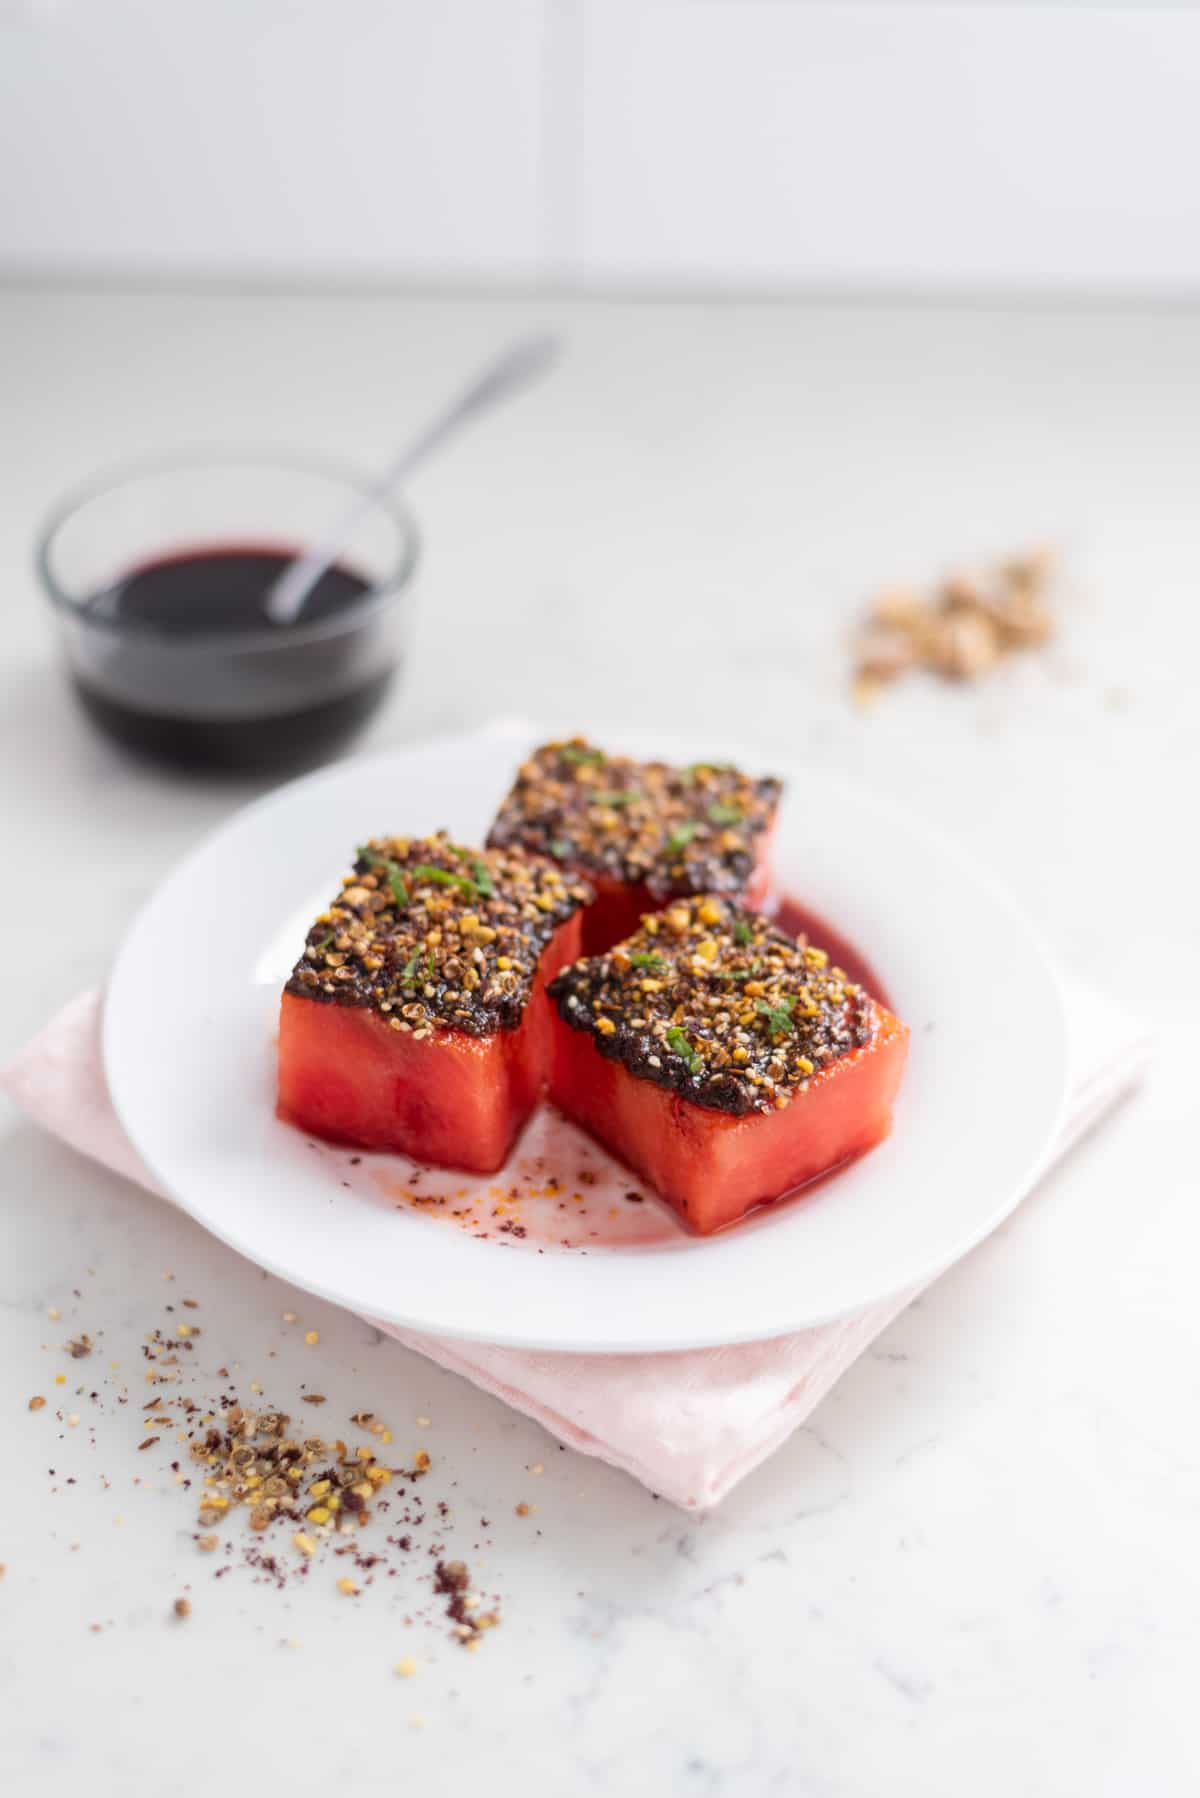 Watermelon topped with harissa, dukkah, and mint with pomegranate molasses in the background.